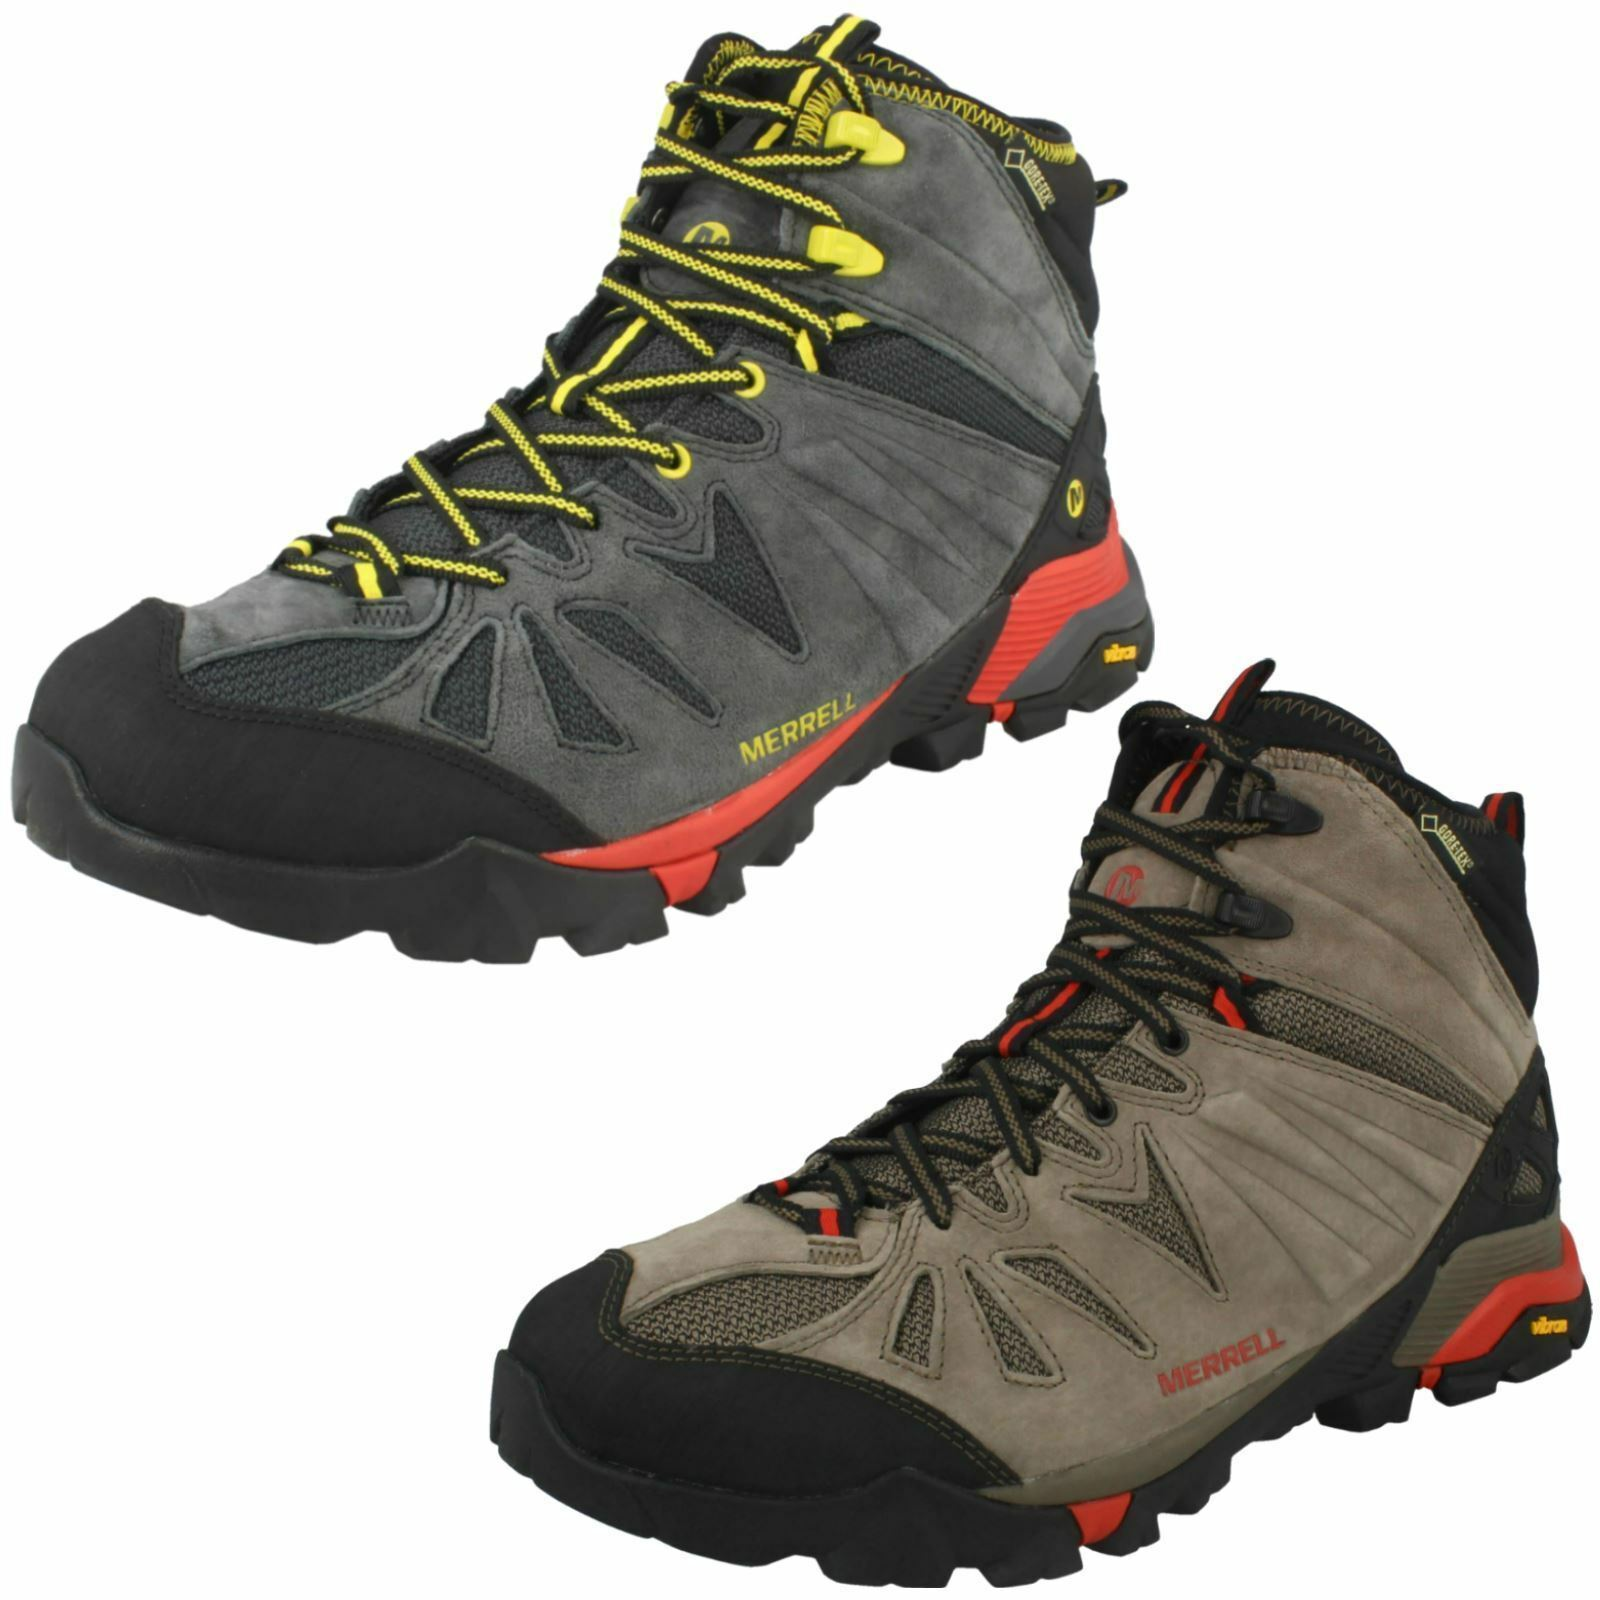 MENS MERRELL CAPRA MID GORE-TEX LACE UP LEATHER WALKING HIKING BOOTS SIZE